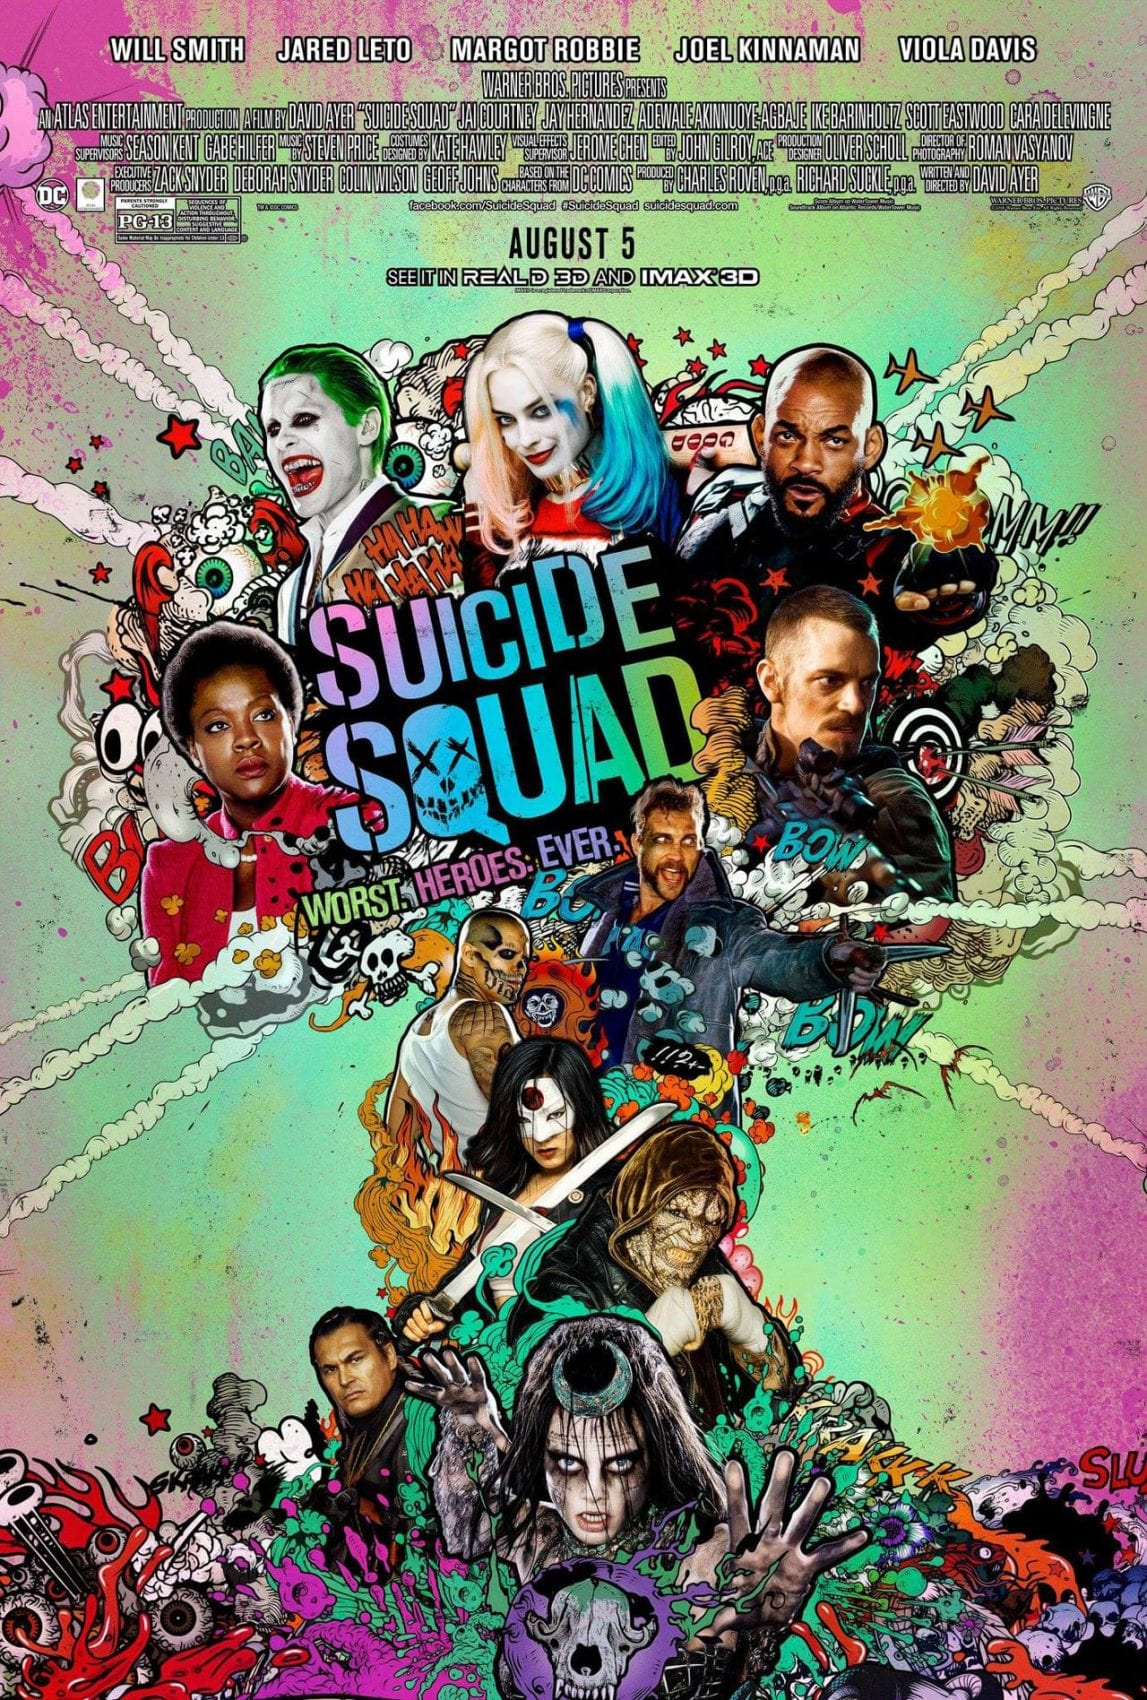 REVIEW – Suicide Squad